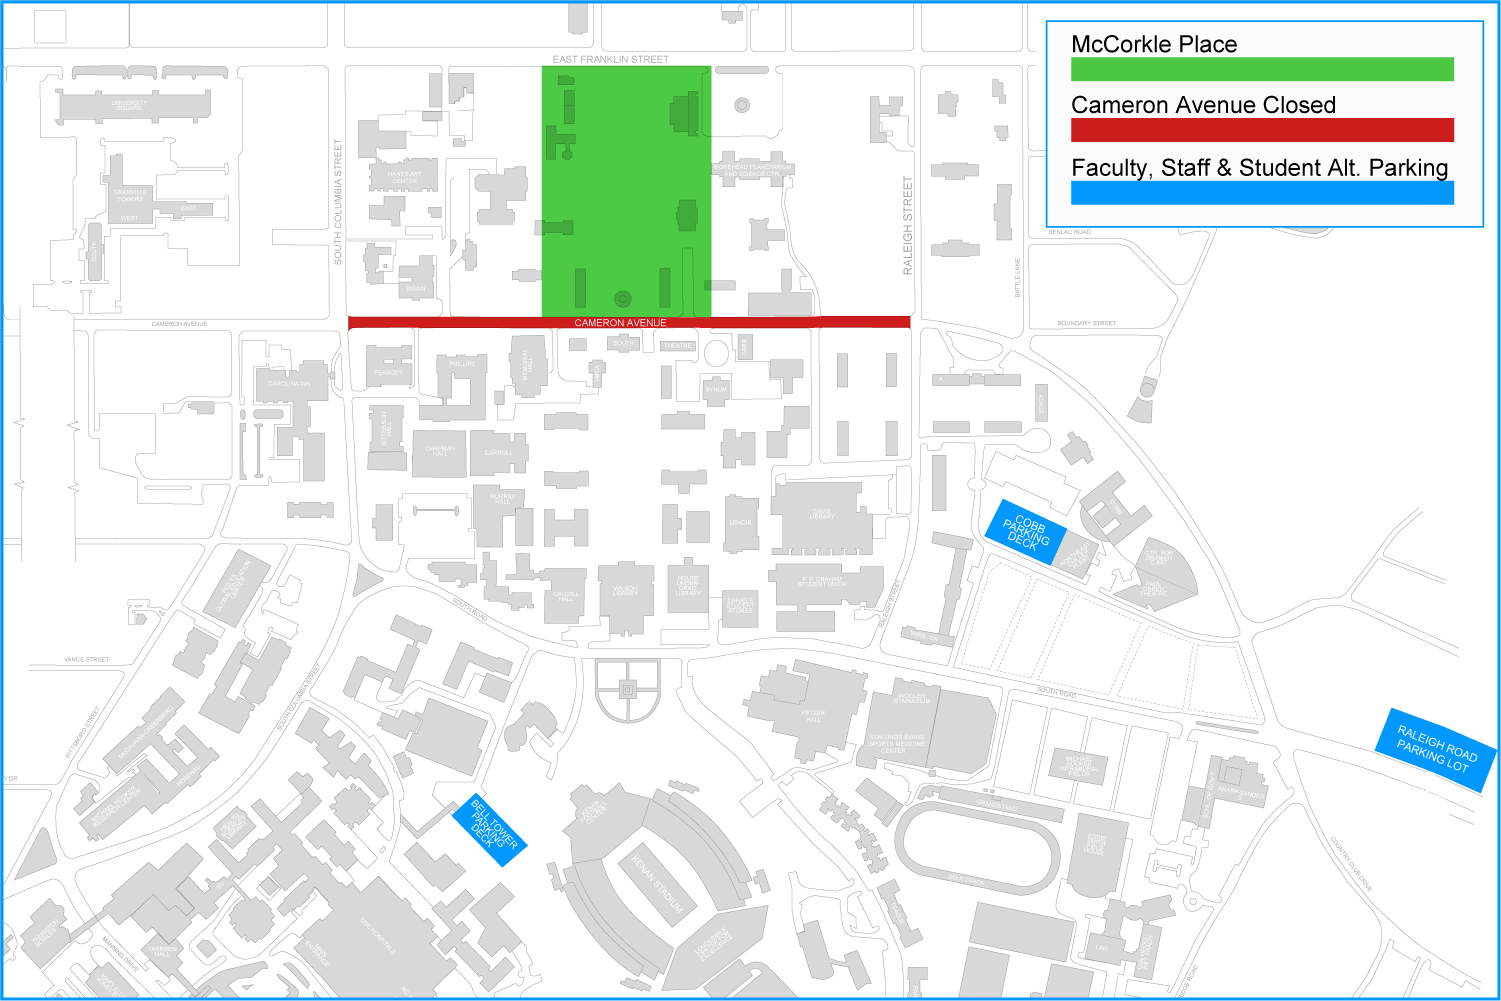 Transit and Parking Impacts at McCorkle place